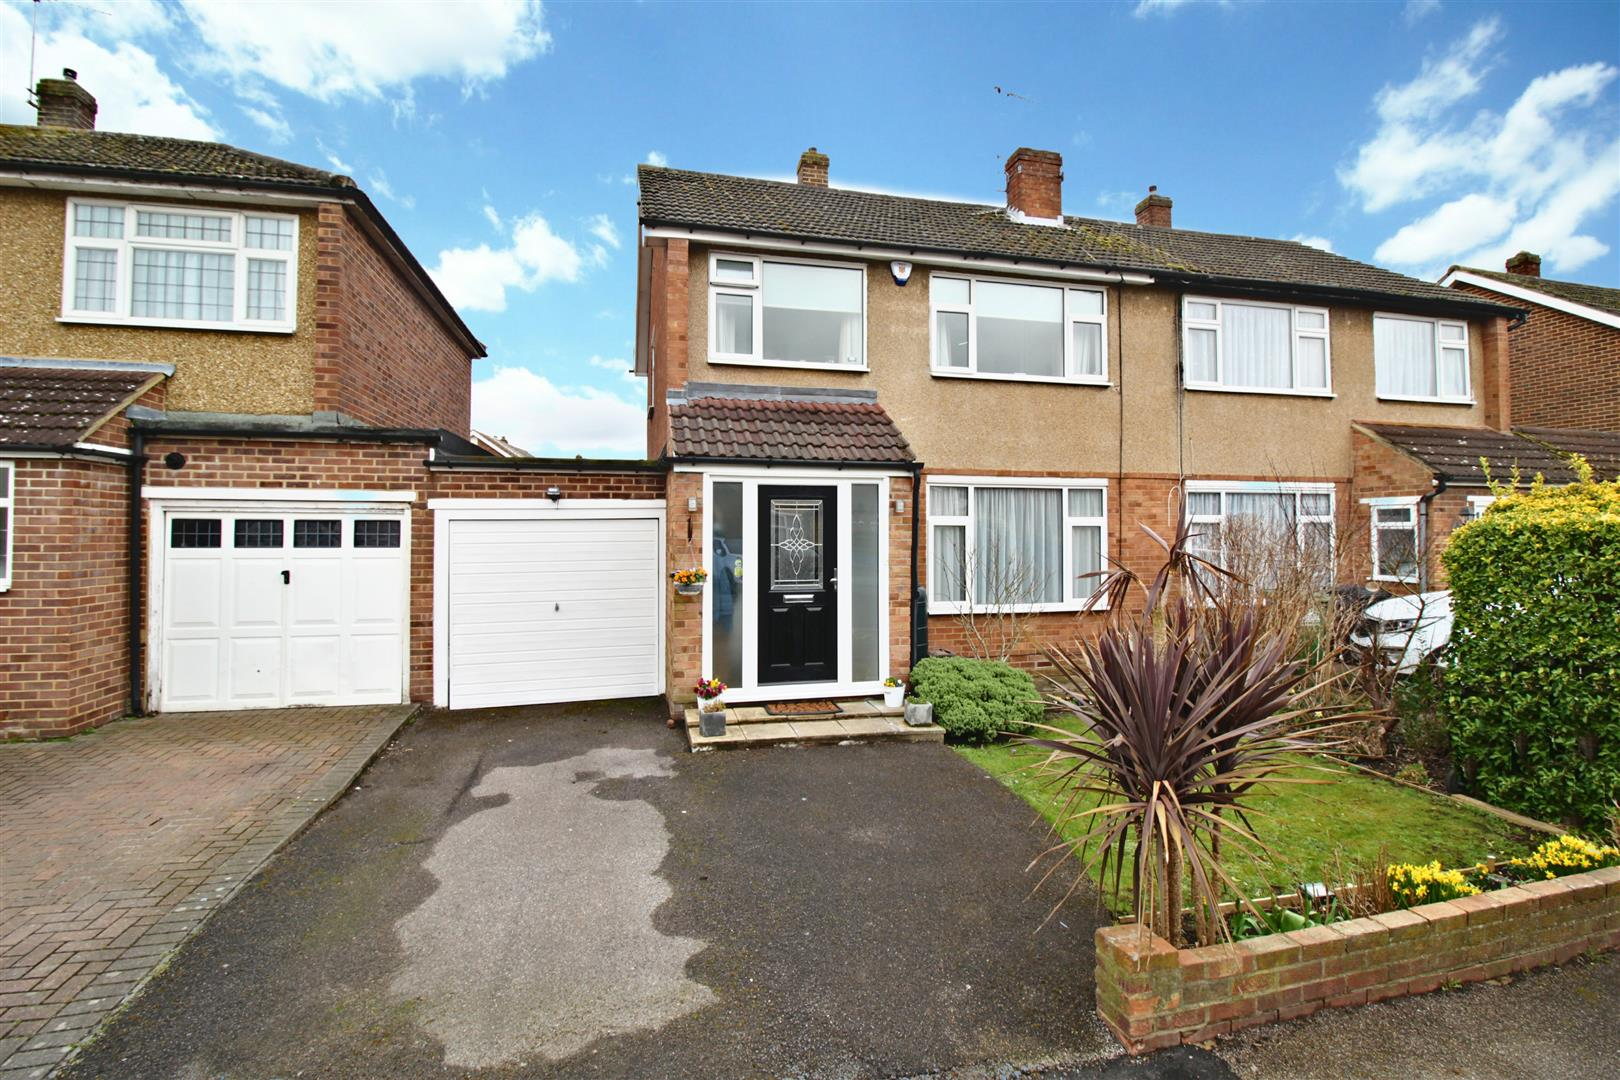 Ashdown Crescent, Cheshunt - Extended 3 Bedroom Semi Detached Within Walking Distance To Cheshunt BR